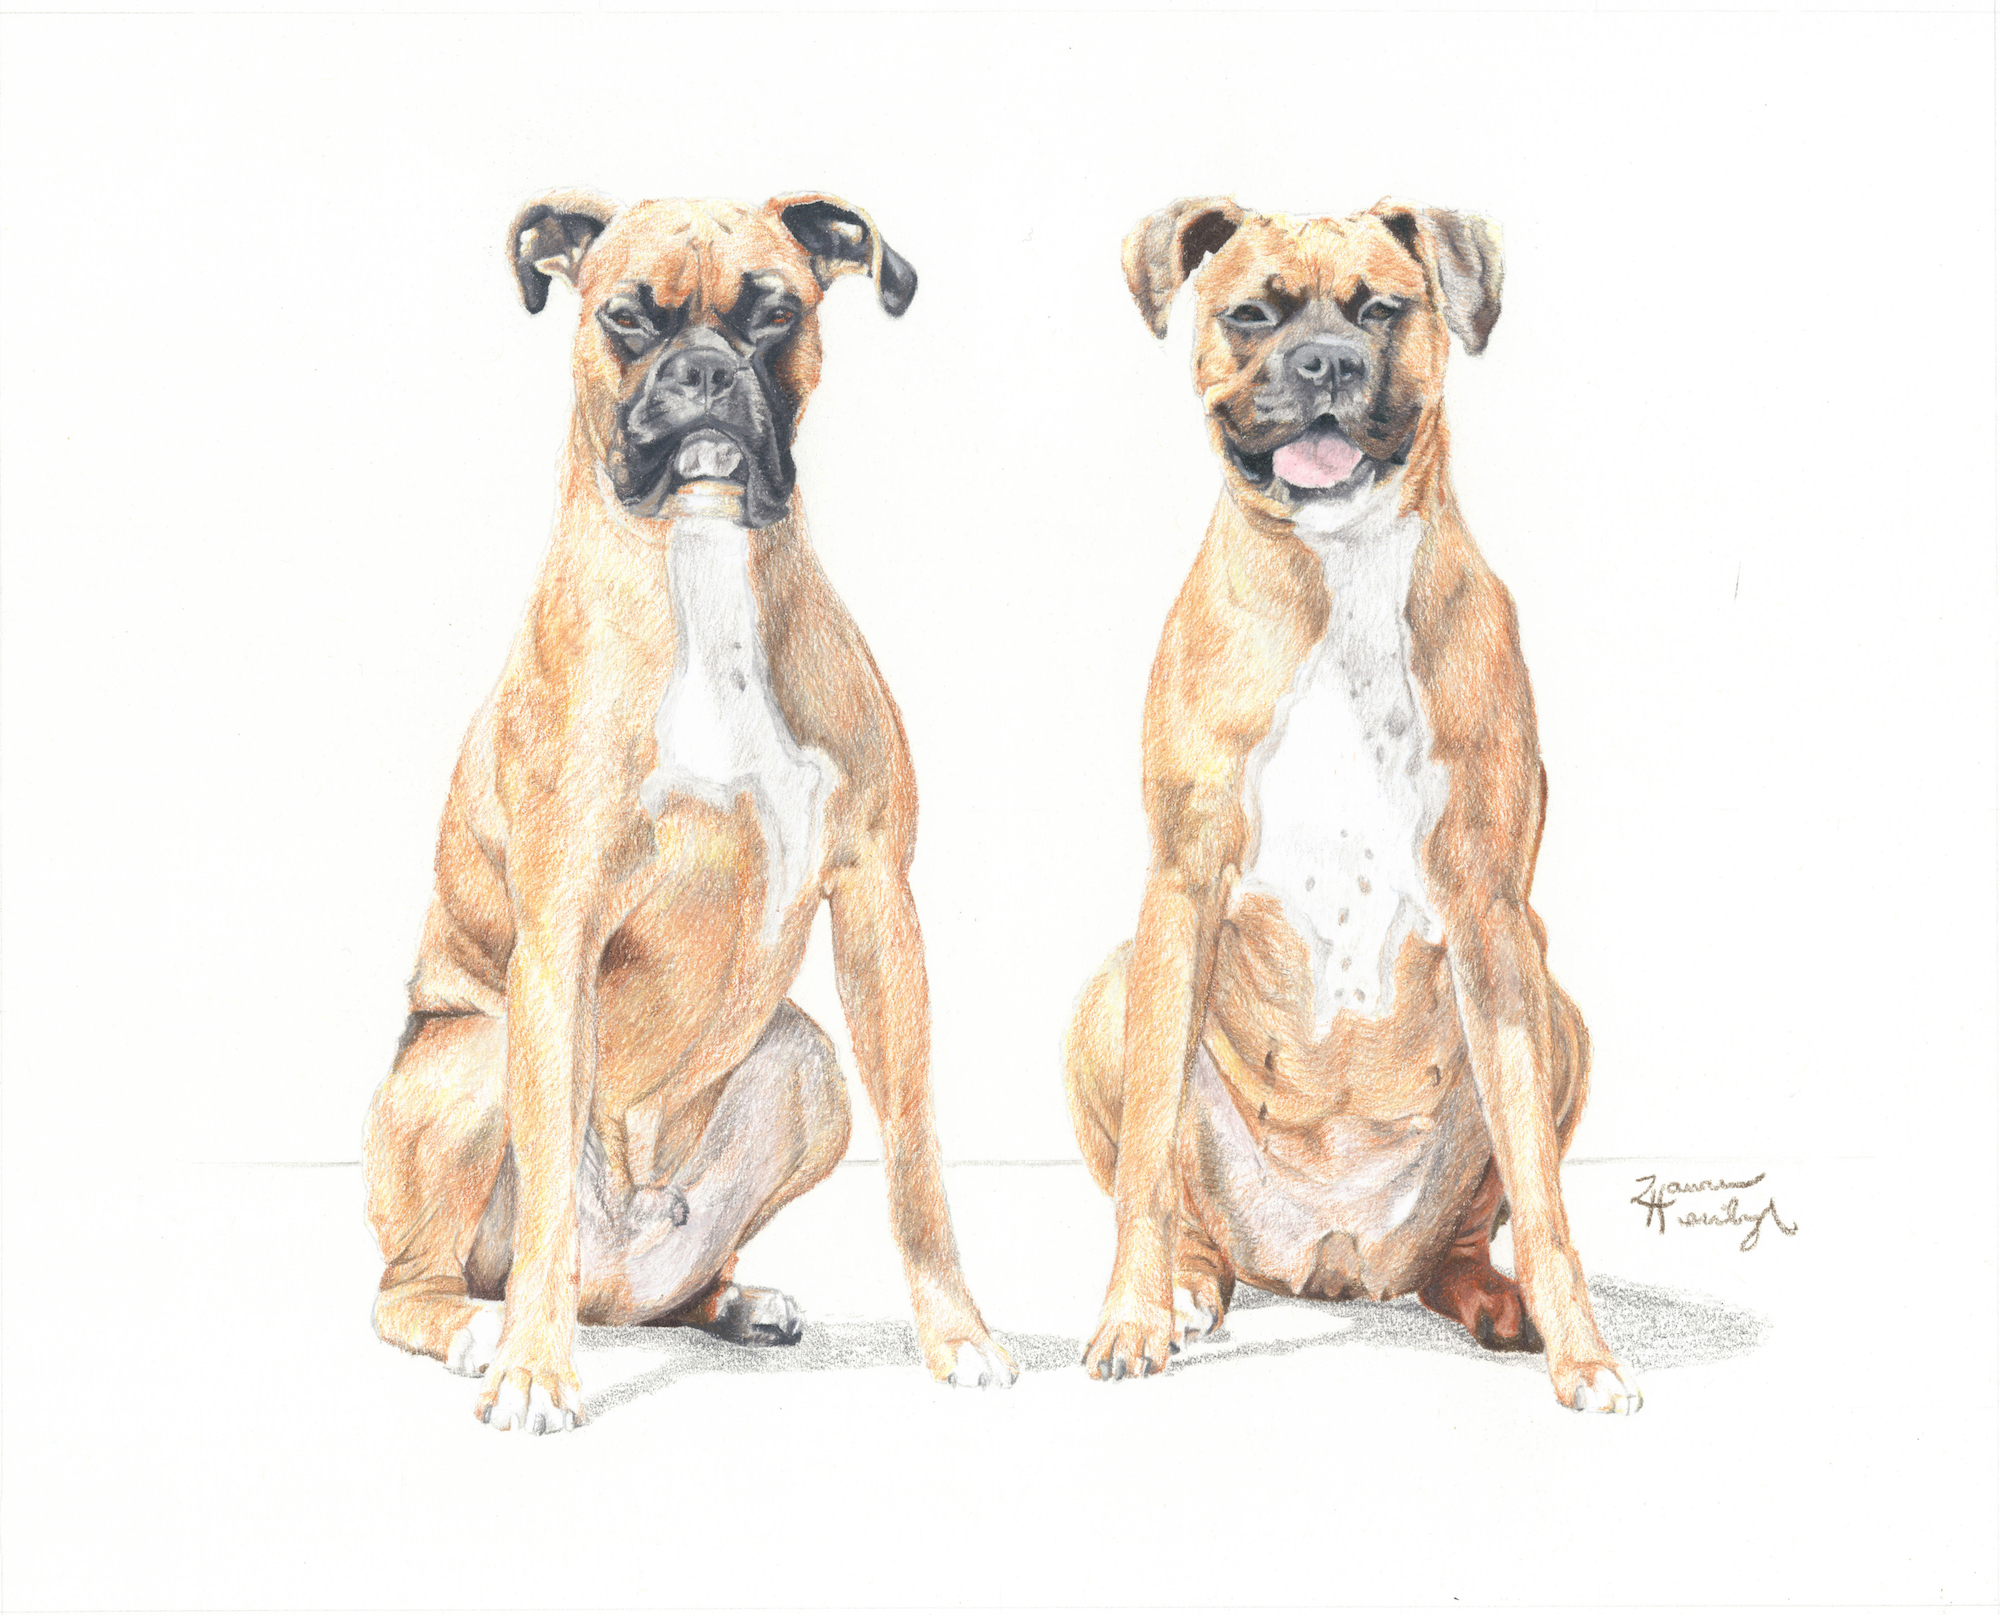 Diesel and Roxie the Boxers (2013)